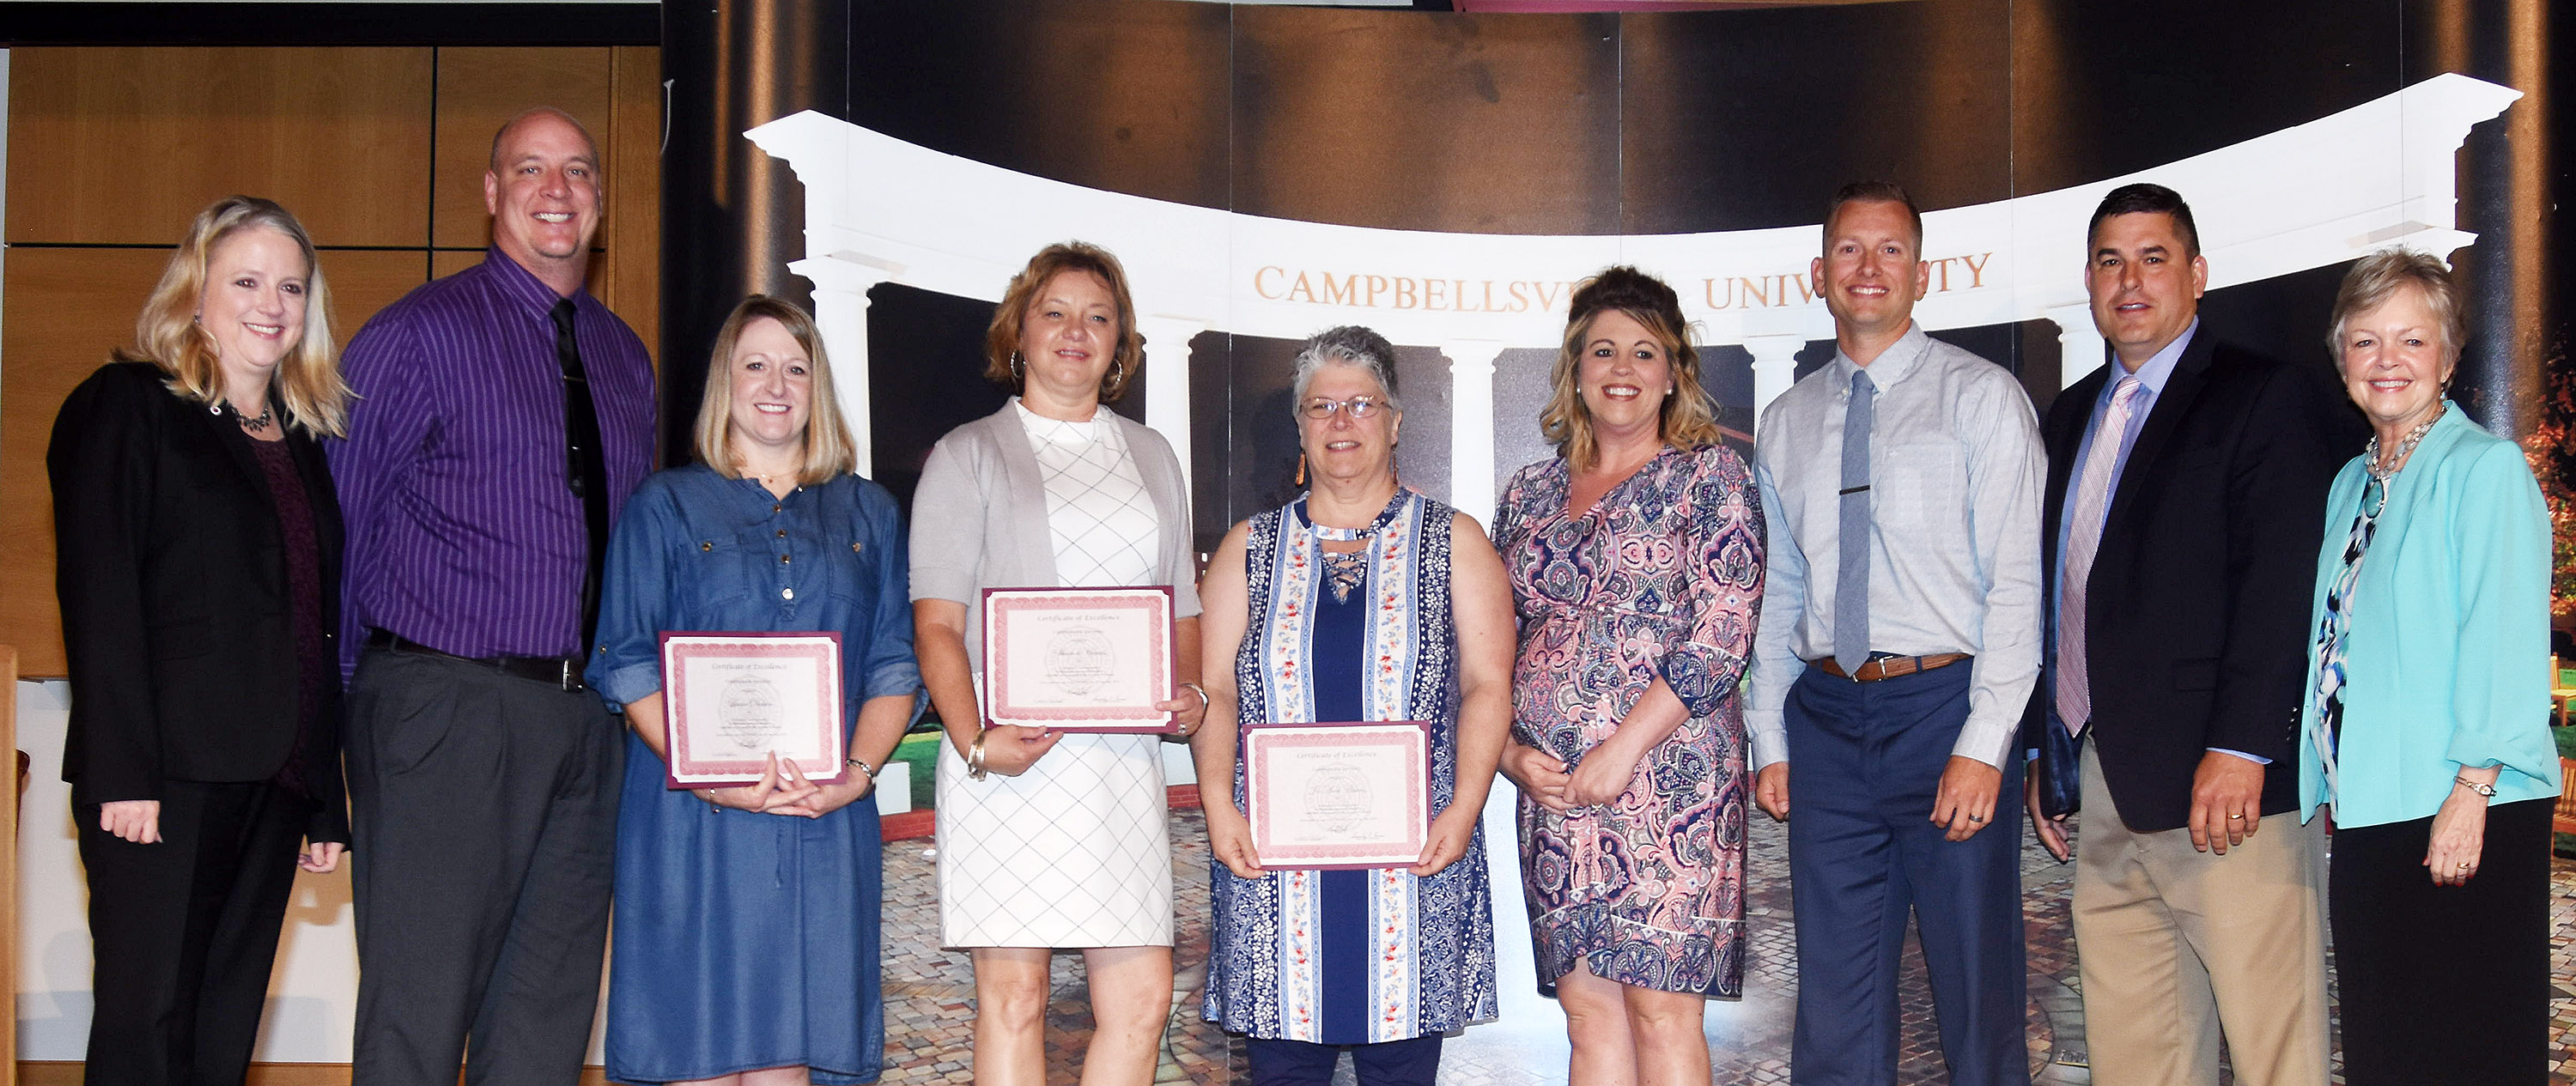 Campbellsville Independent Schools' teachers were honored at Campbellsville University's Excellence in Teaching Awards ceremony on Saturday, May 19. From left are CU Provost and Vice President for Academic Affairs Donna Hedgepath, CHS Principal David Petett, CES reading interventionist Laura Dicken, CMS teacher Sharon Harris, CHS teacher Jo Ann Harris, CES Principal Elisha Rhodes, CMS Principal Zach Lewis, Superintendent Kirby Smith and Dr. Beverly Ennis, dean of the CU School of Education.